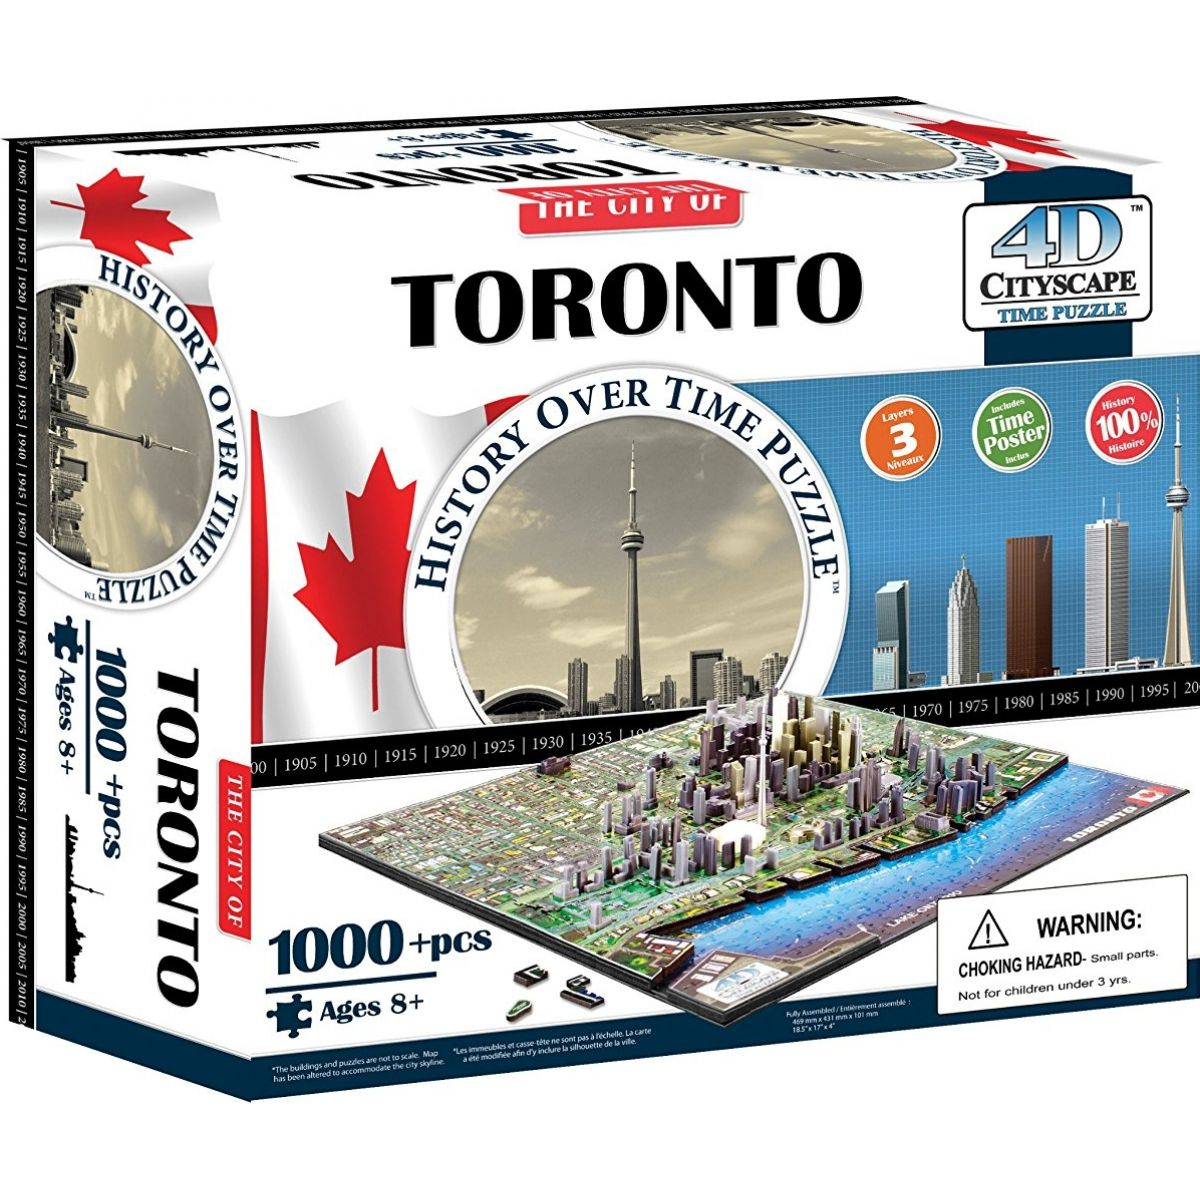 4D Cityscape puzzle Time Panorama Toronto